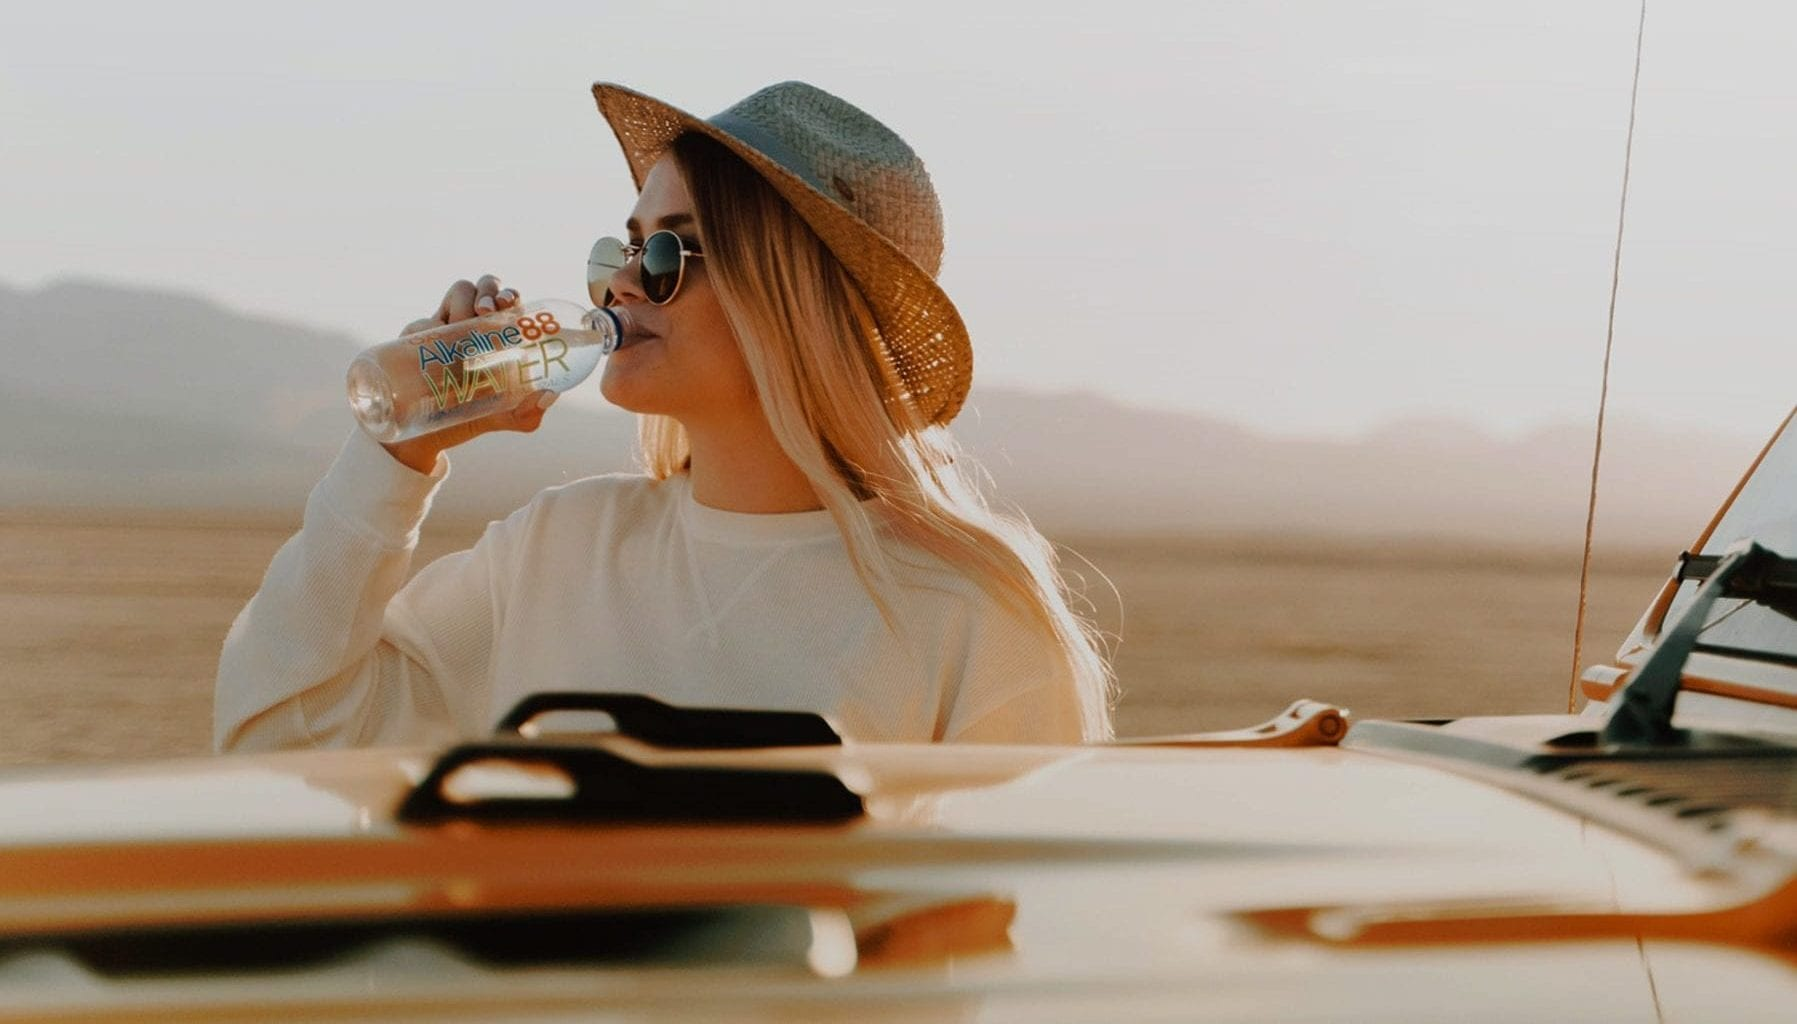 The Alkaline Water Company Inc. (TSXV:WTER) (NASDAQ:WTER) announced last week it posted record monthly sales to a tune of $3.8 million in May—and that's without sales of its new hemp-infused water line